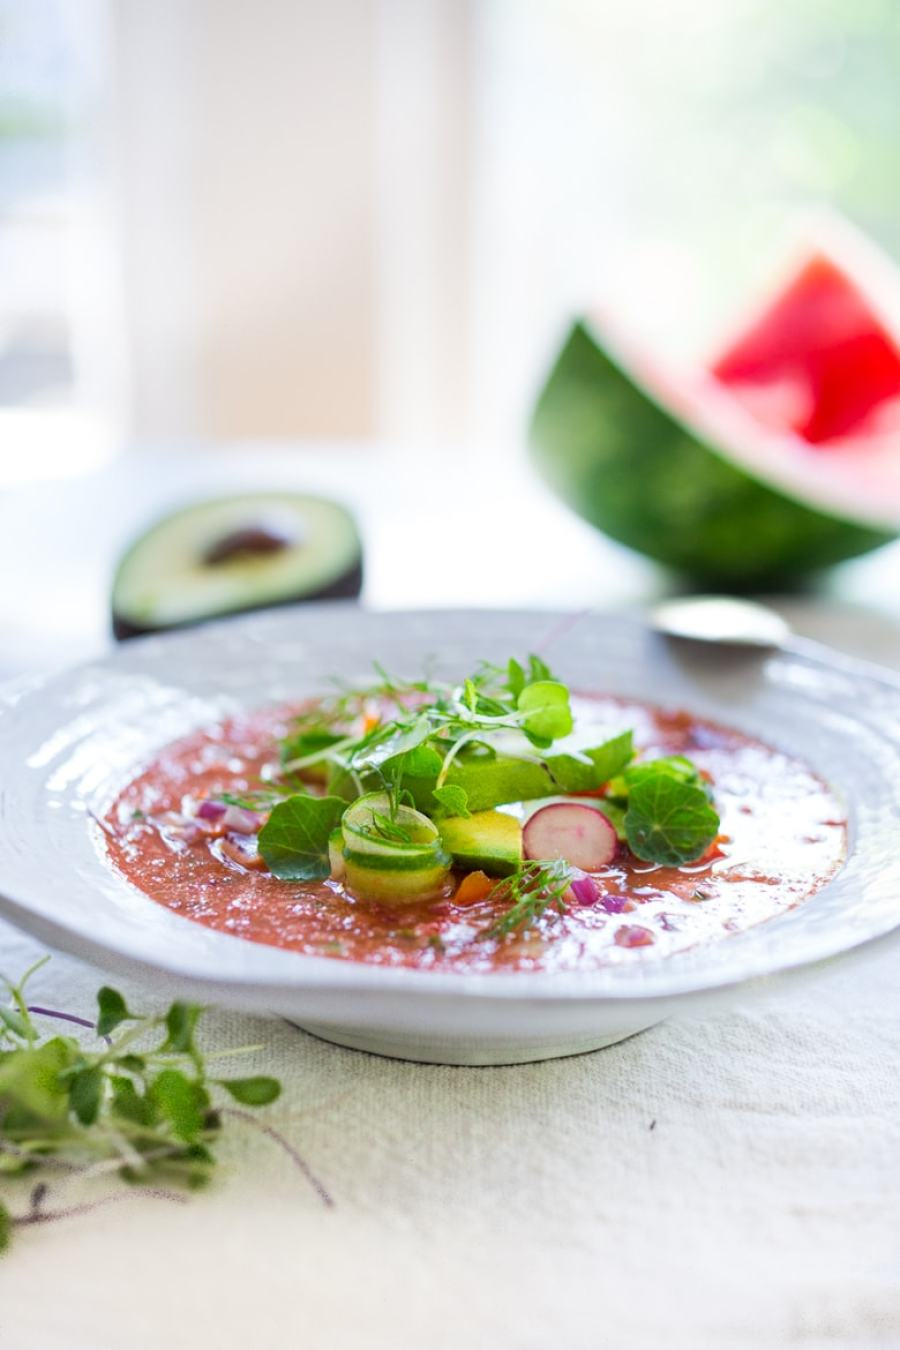 Cool and refreshing Watermelon Gazpacho with avocado, cucumber and sprouts. A easy chilled soup for summer! | www.feastingathome.com